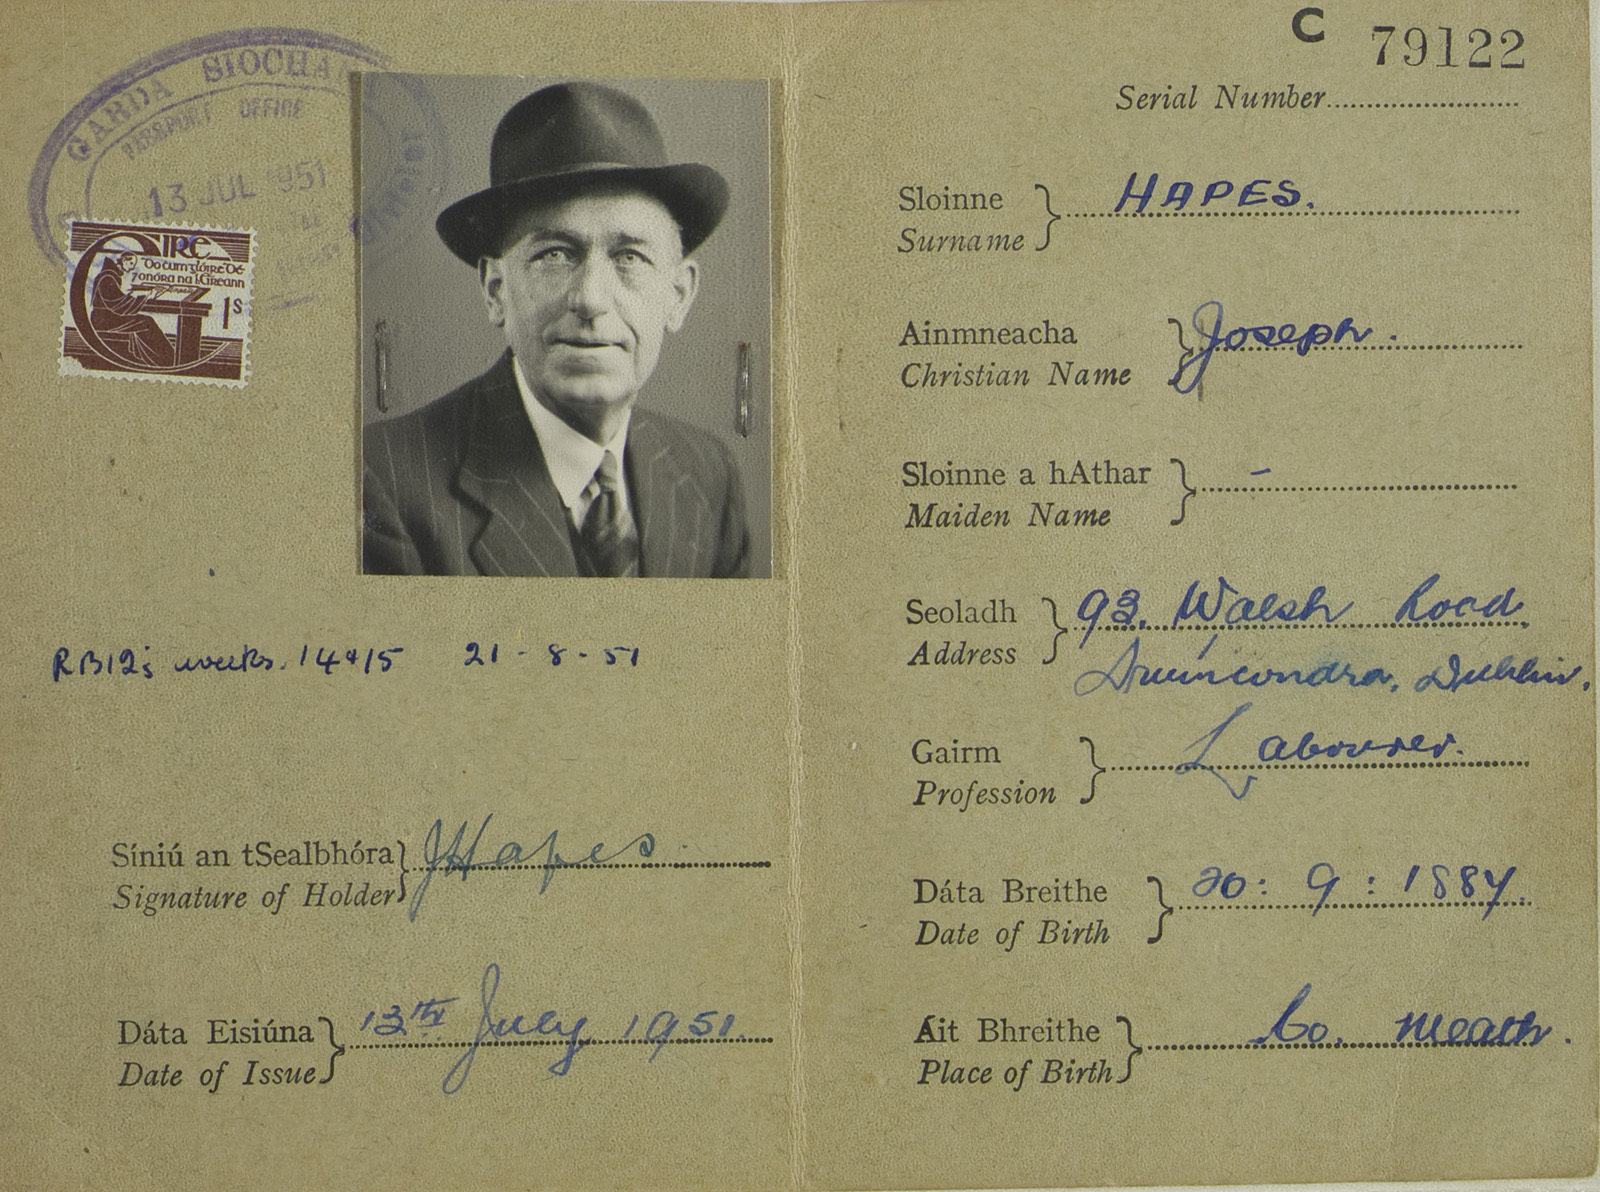 Passport of Joseph Heapes in later life, Royal Irish Rifles, Europeana 1914-1918 / Máire Uí Éafa, CC BY-SA